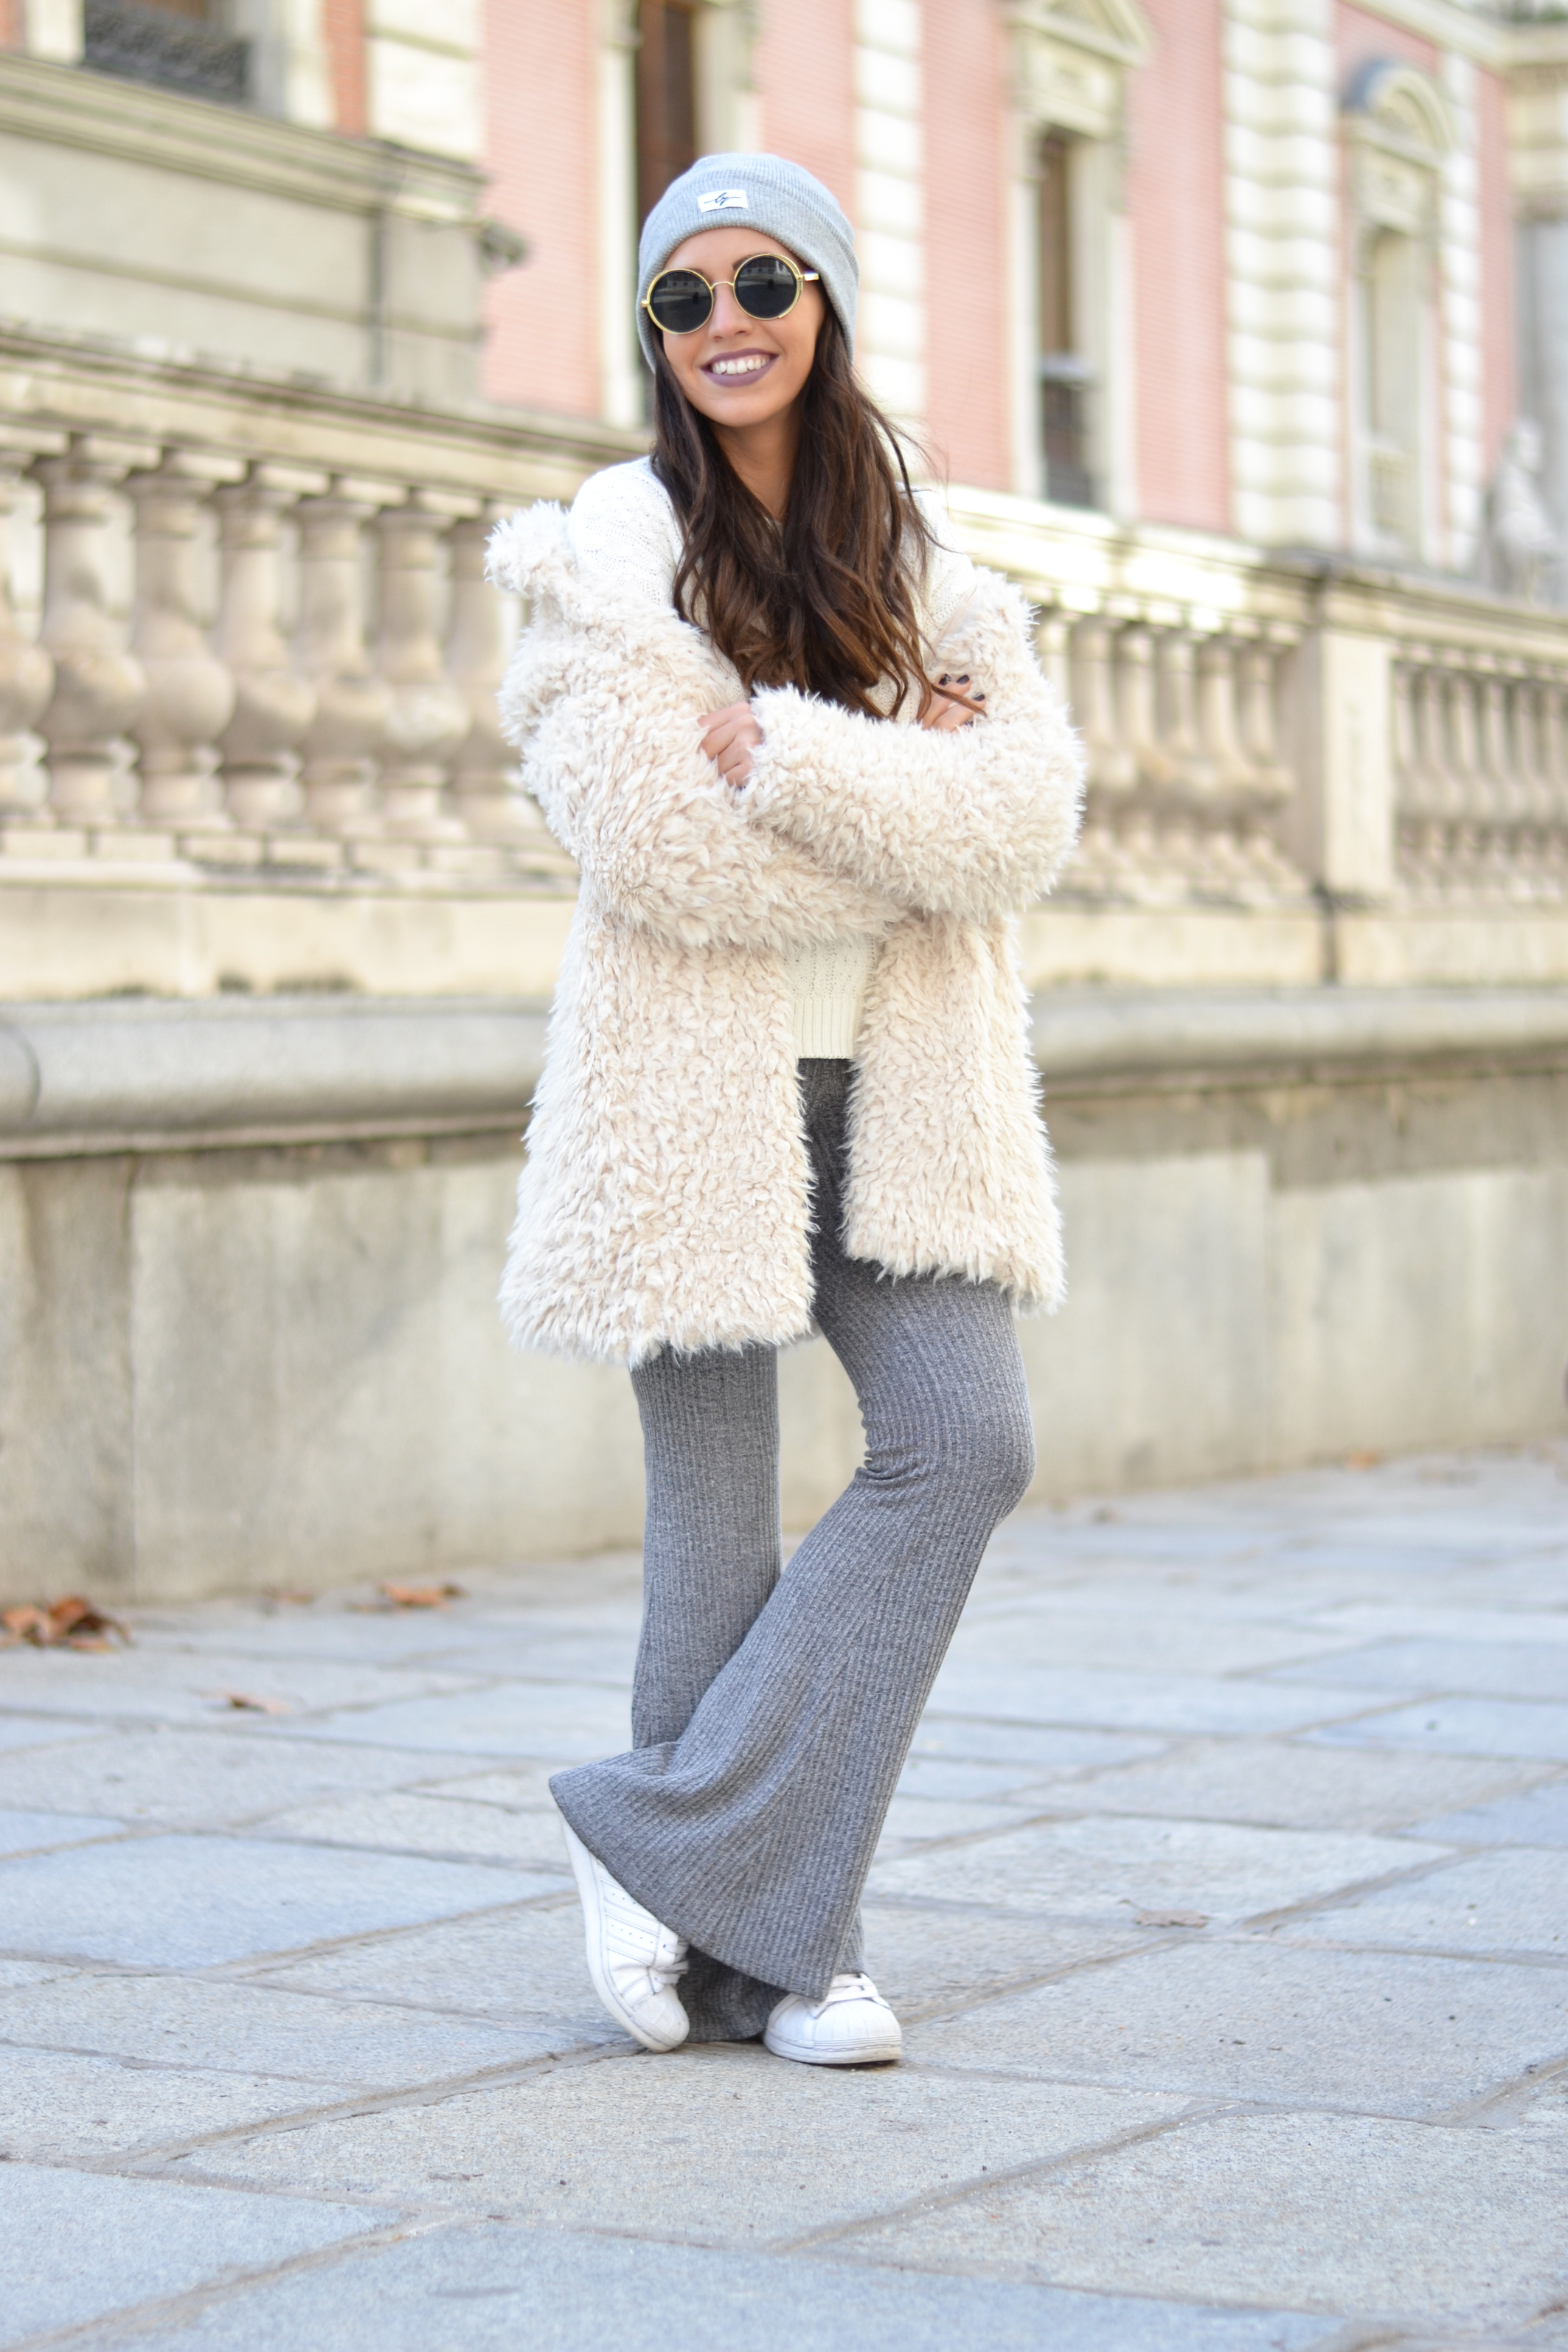 warm-white-coat_knited-flared-pant_gray-beanie_winter-outfi_street-style_3